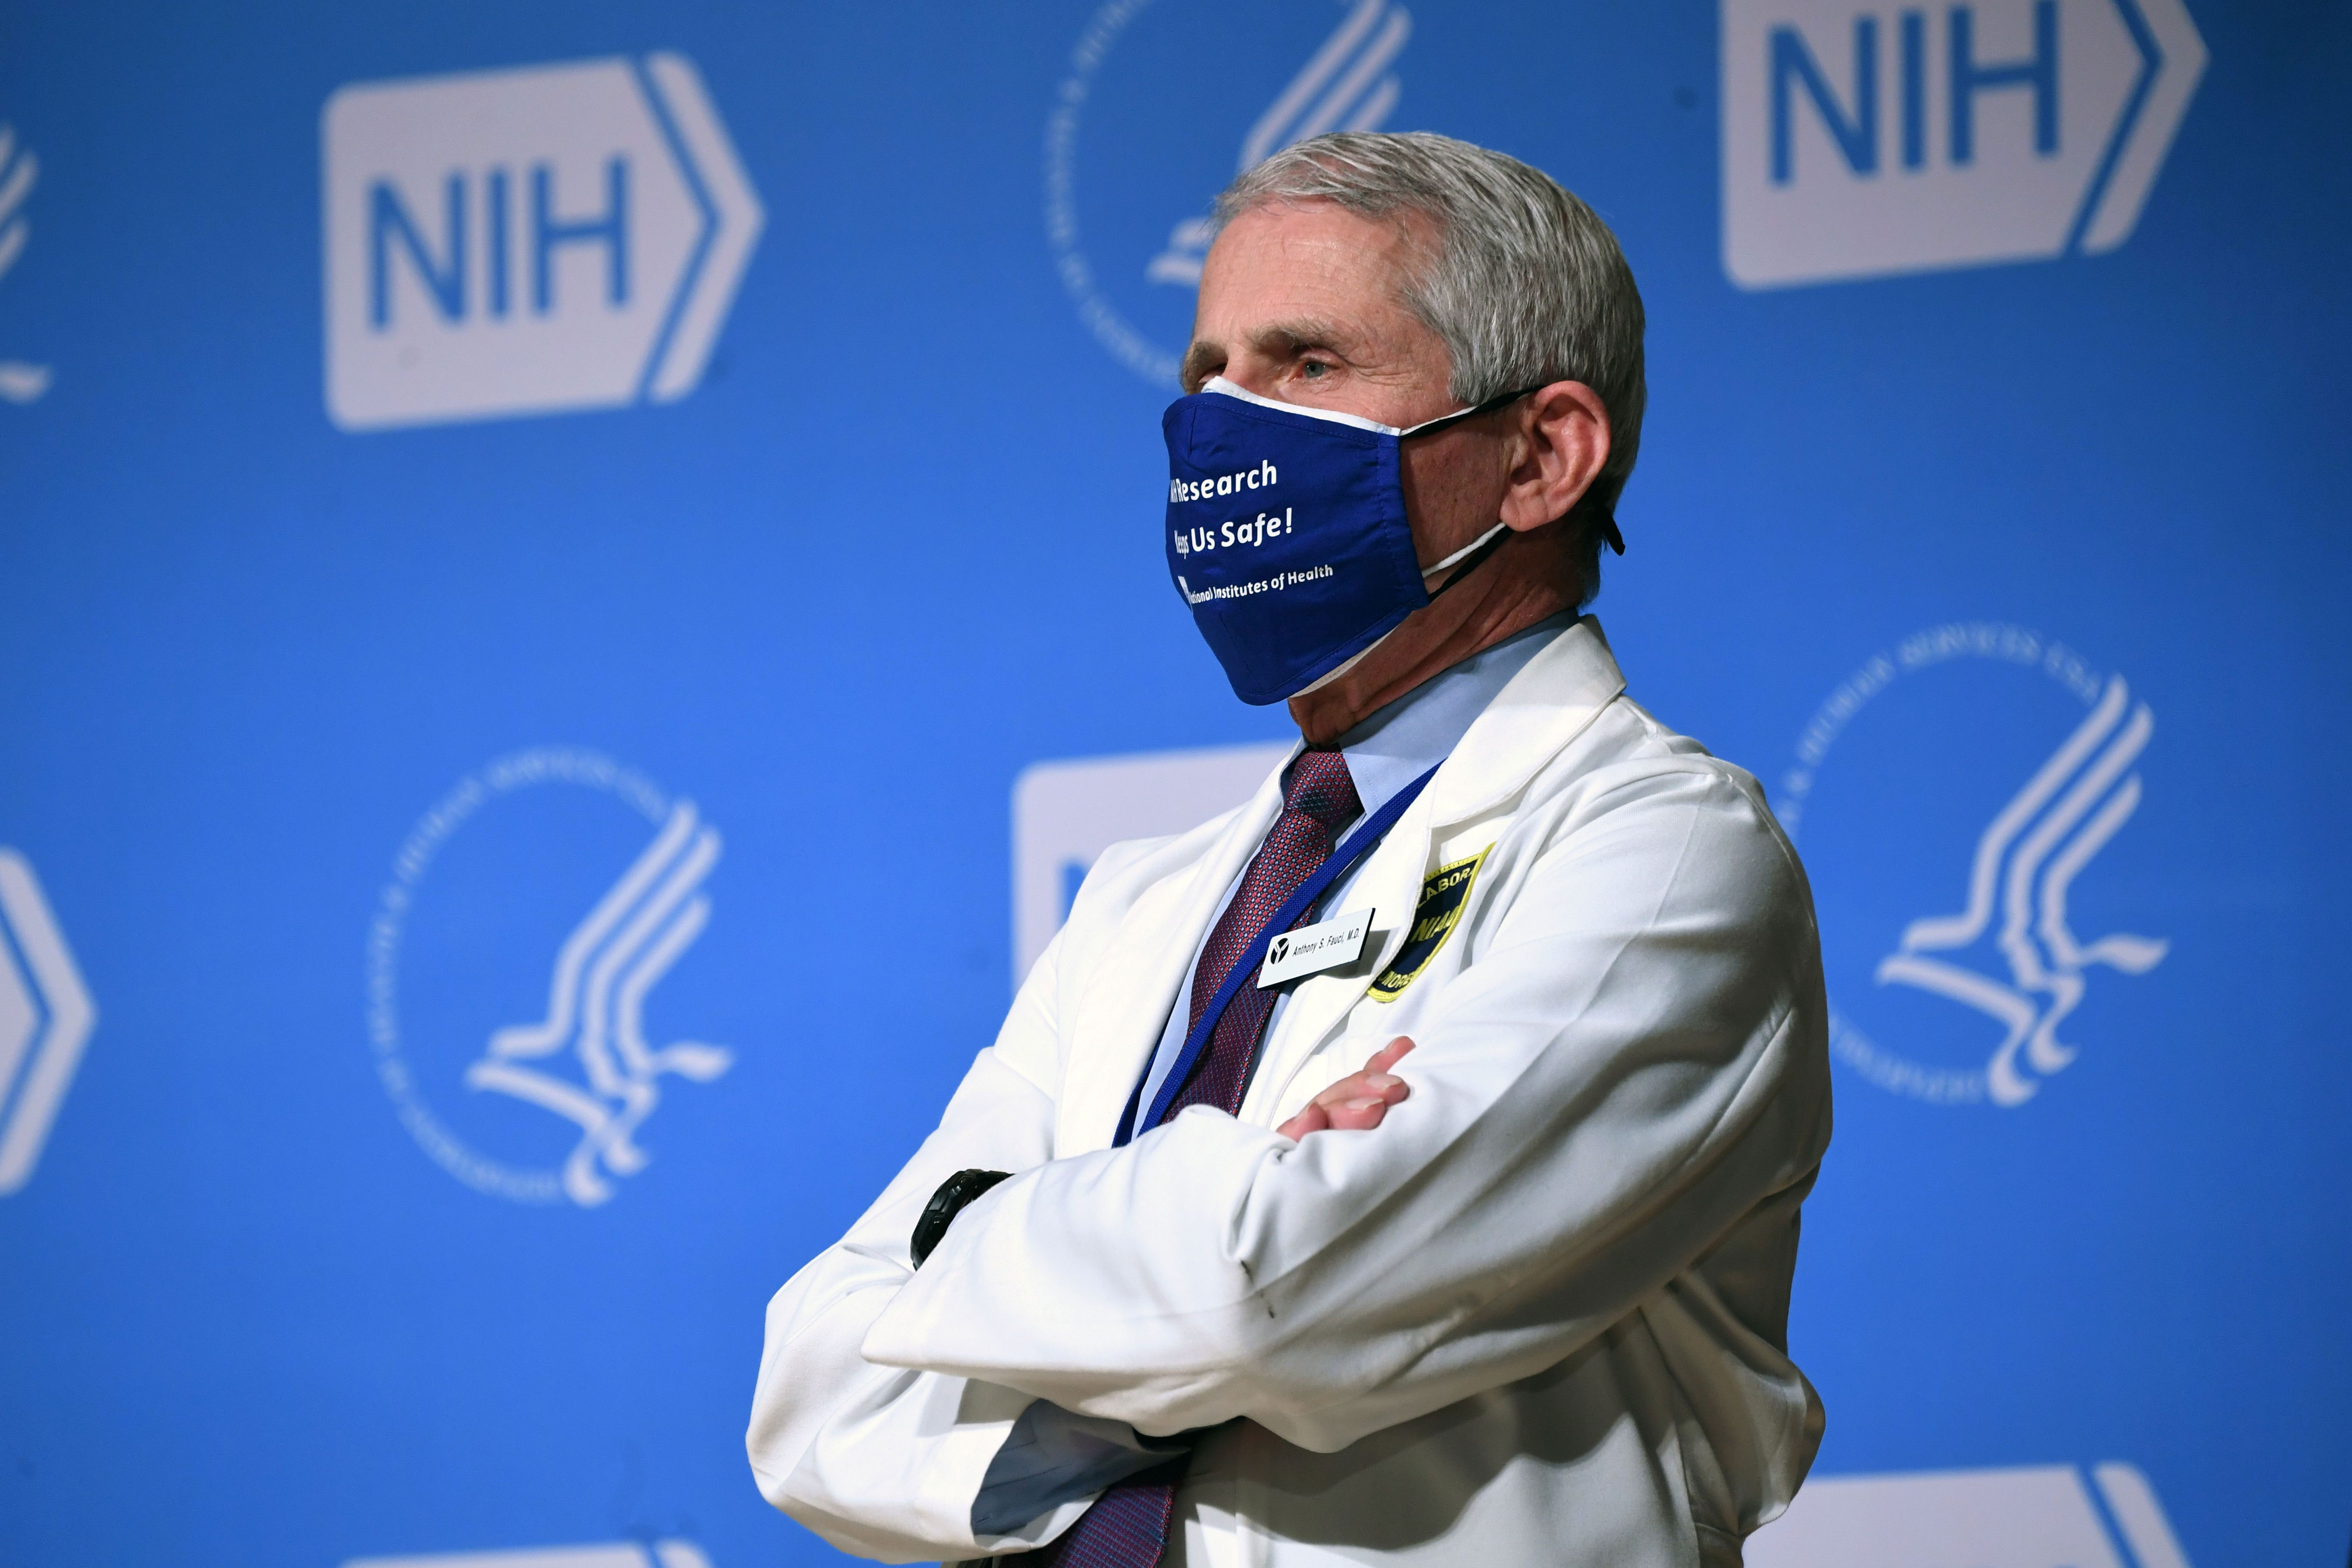 Dr. Anthony Fauci listens to US President Joe Biden, out of frame, during a visit to the National Institutes of Health in Bethesda, Maryland, on February 11.